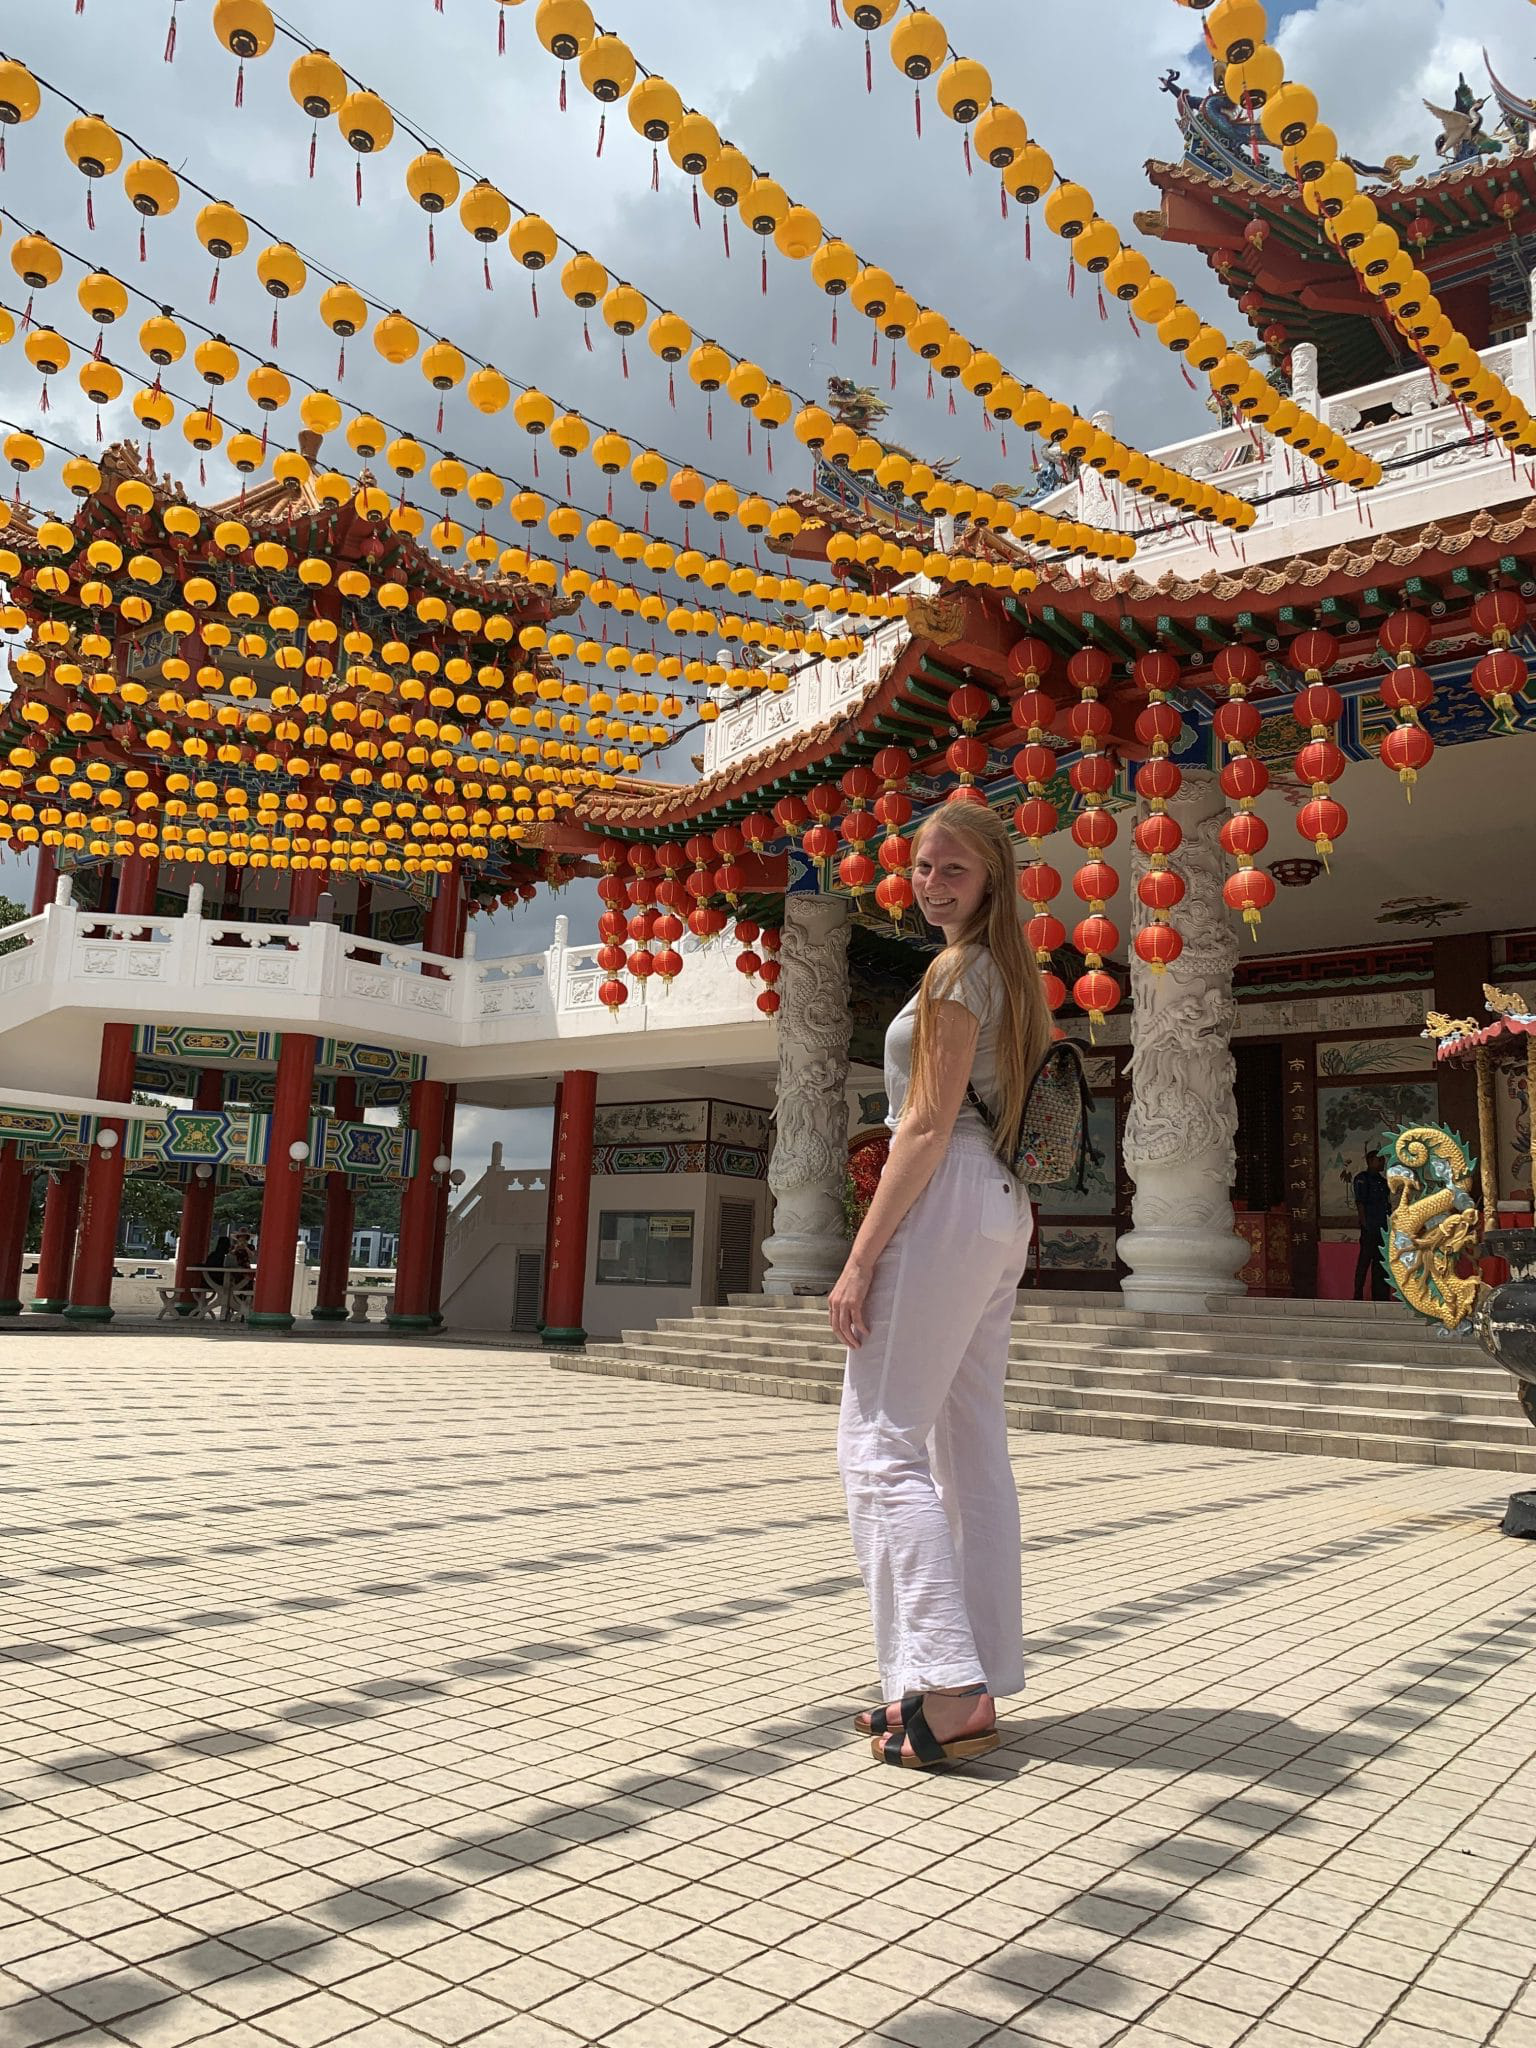 Chloe Beaver in Malaysia under an open roof filled with lanterns